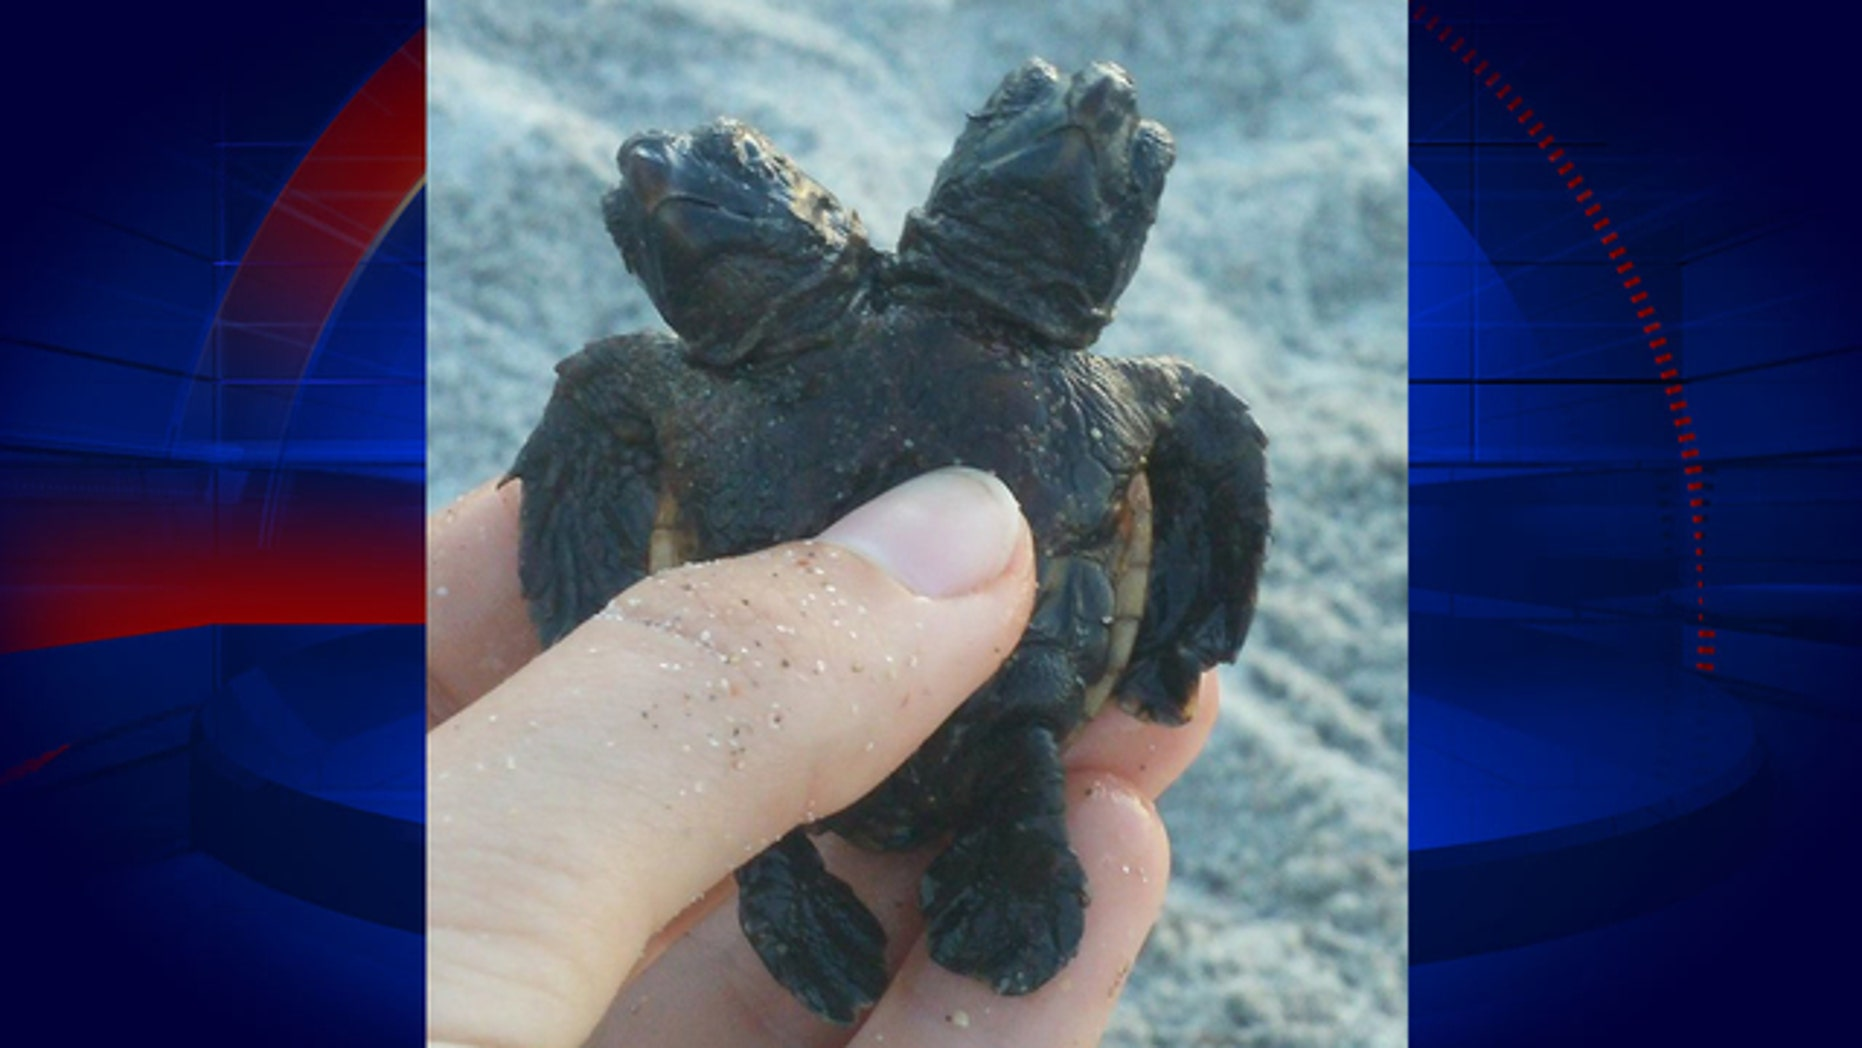 A marine research group found a turtle with two heads in Florida last week.